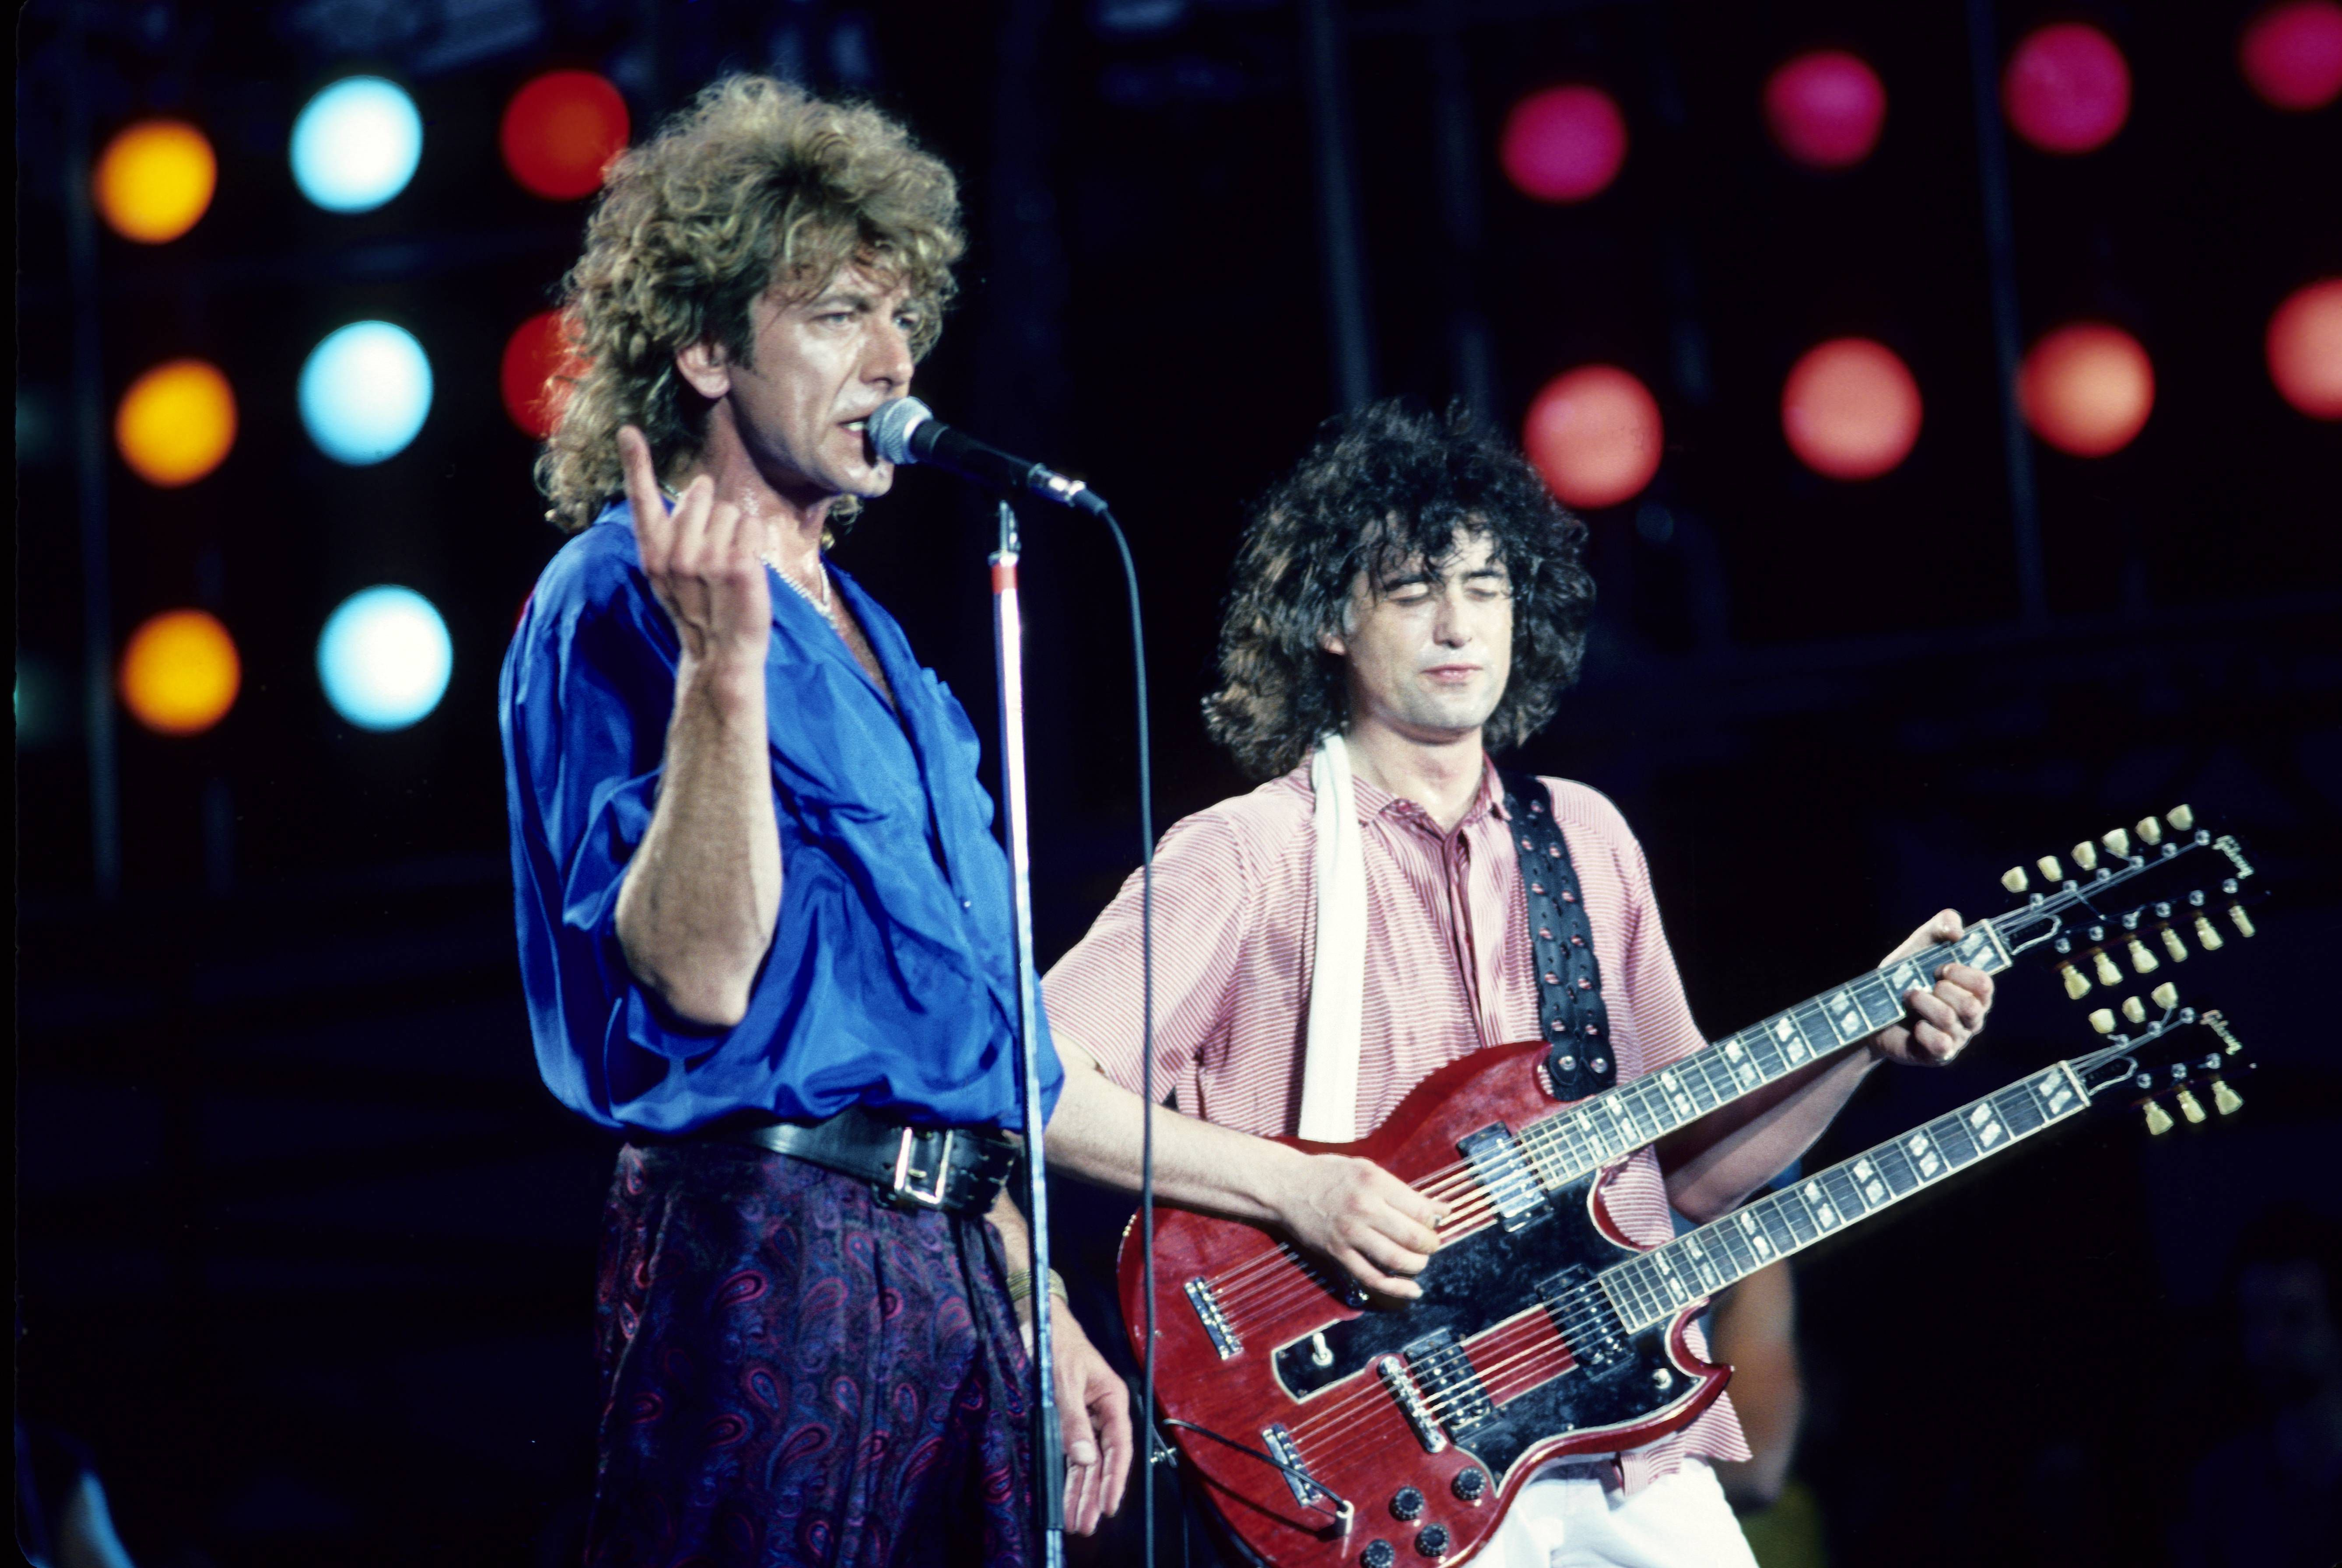 The Worst Live Performances by Great Rock Bands